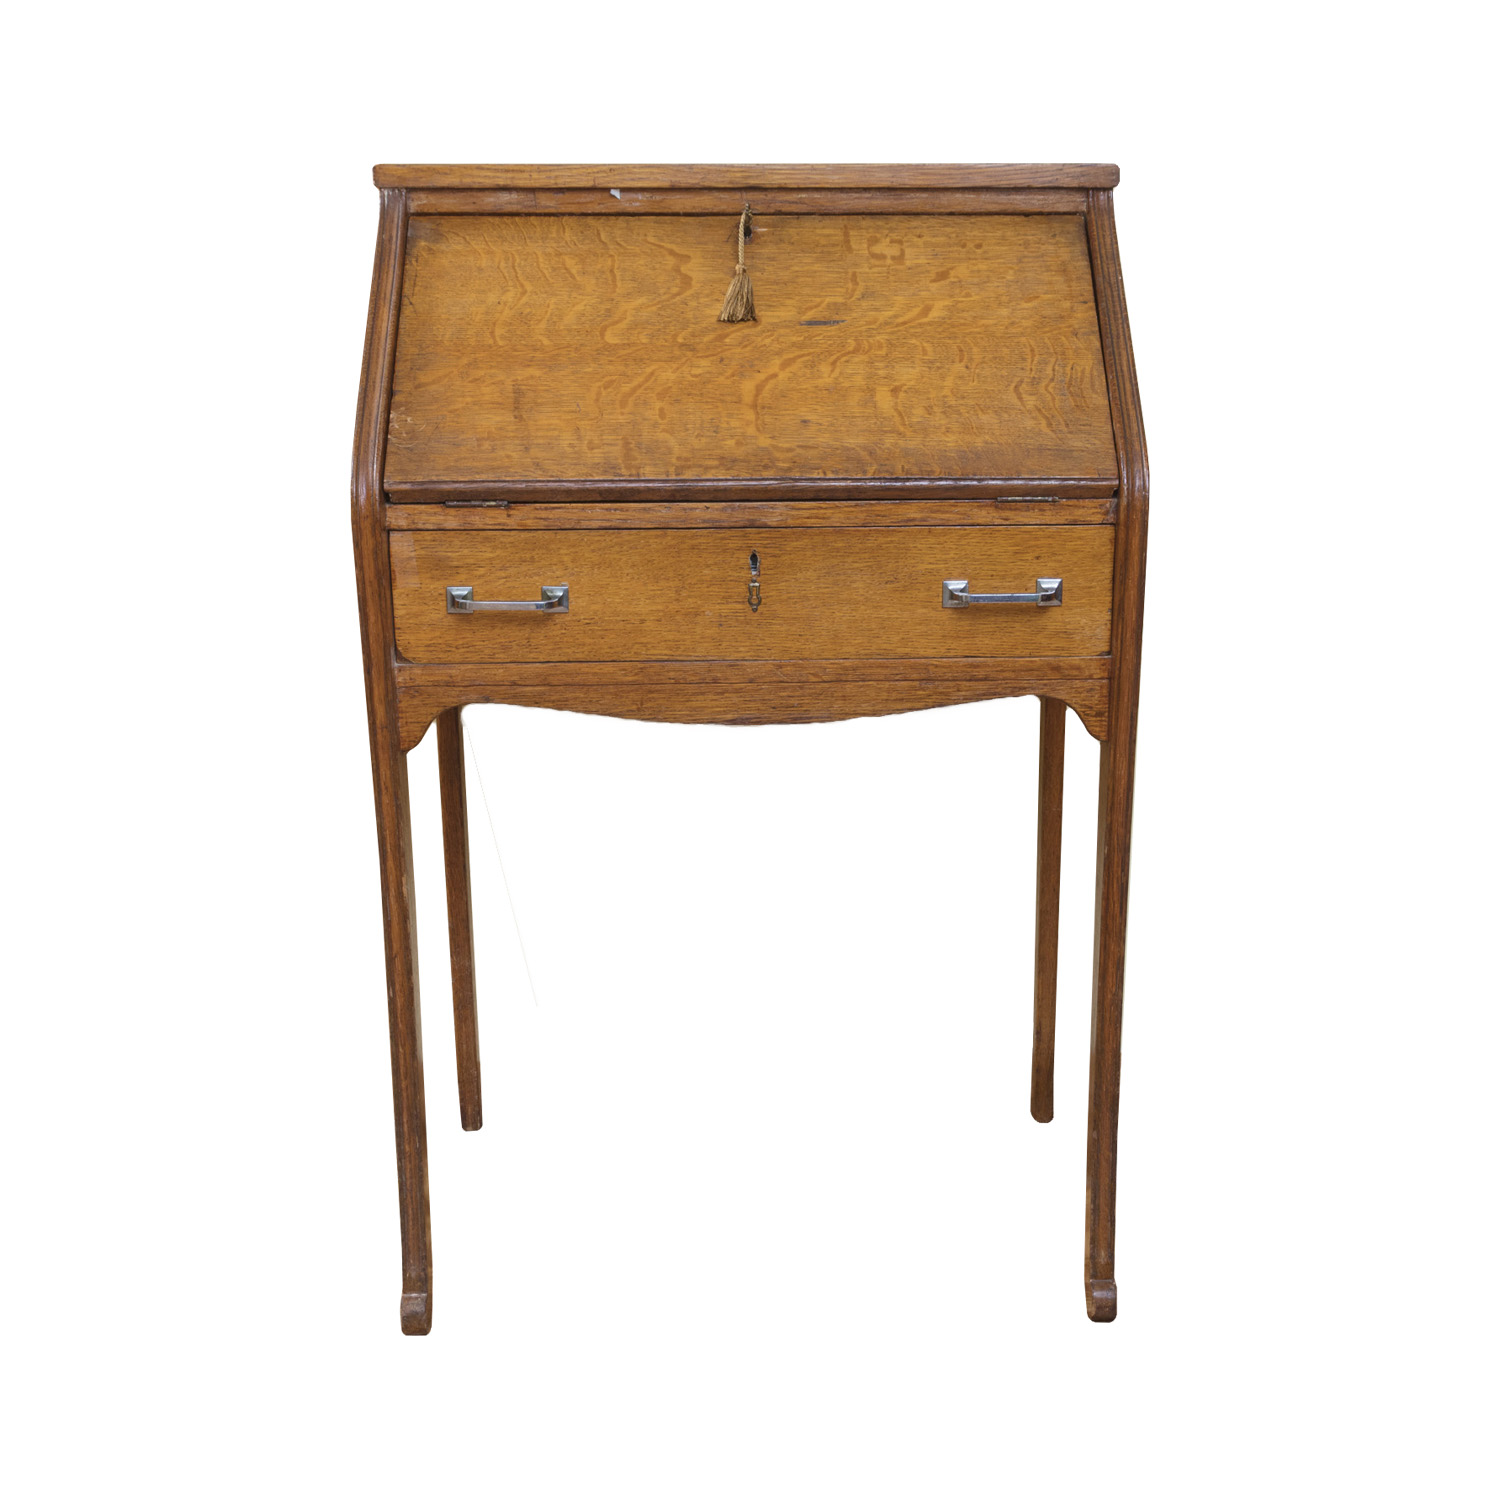 Elegant writing desk